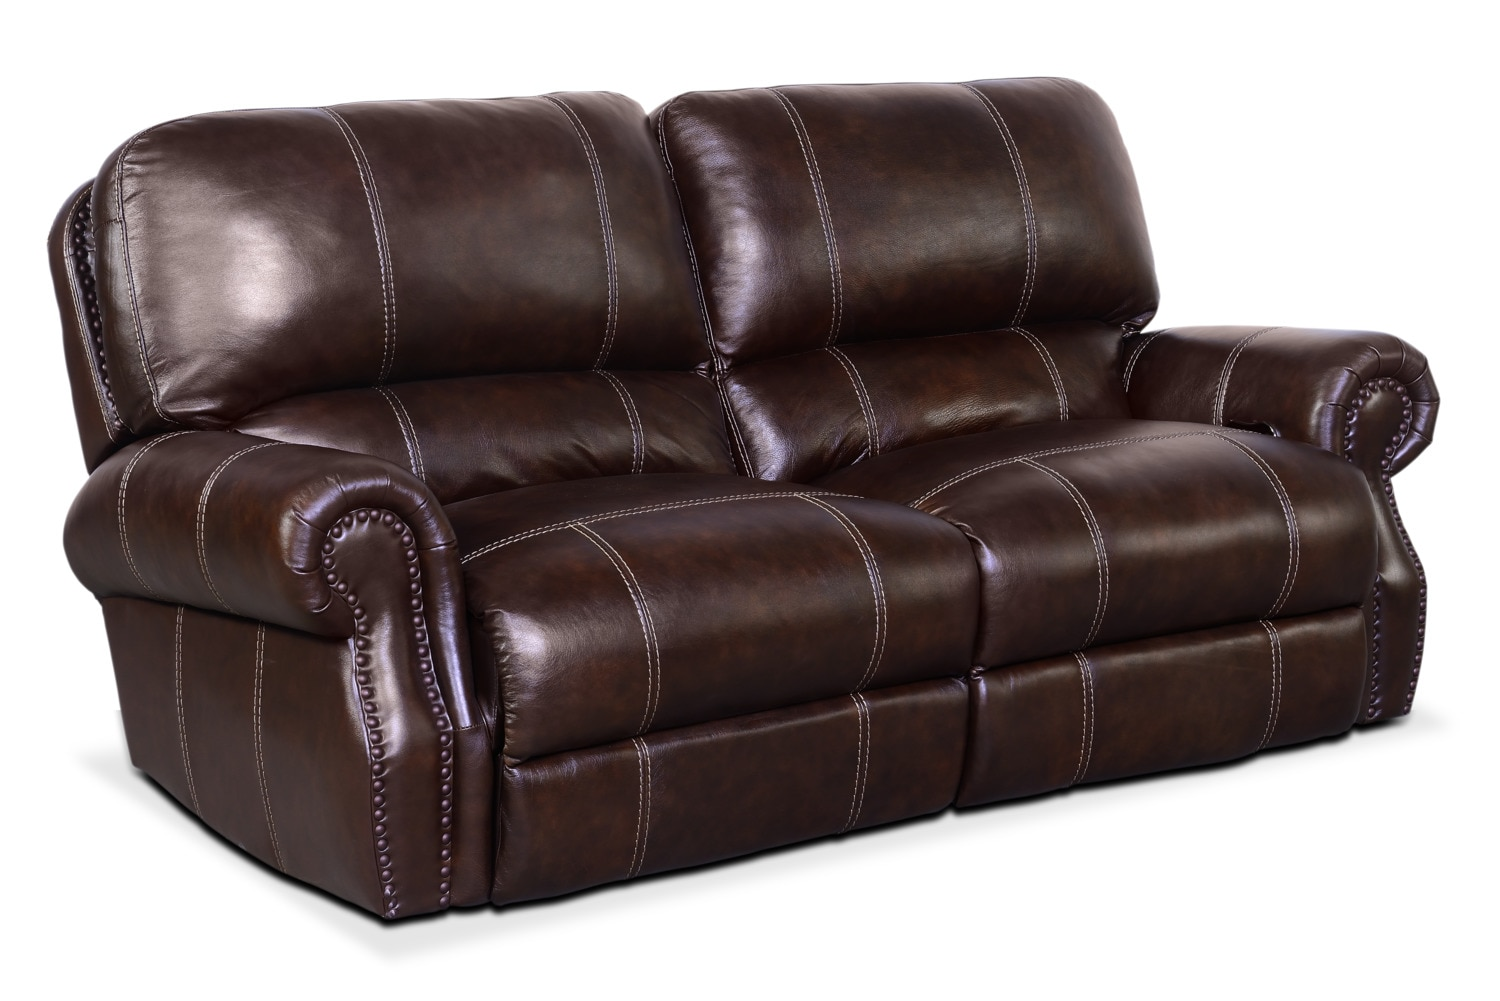 Dartmouth 2 Piece Power Reclining Sofa Chocolate Value